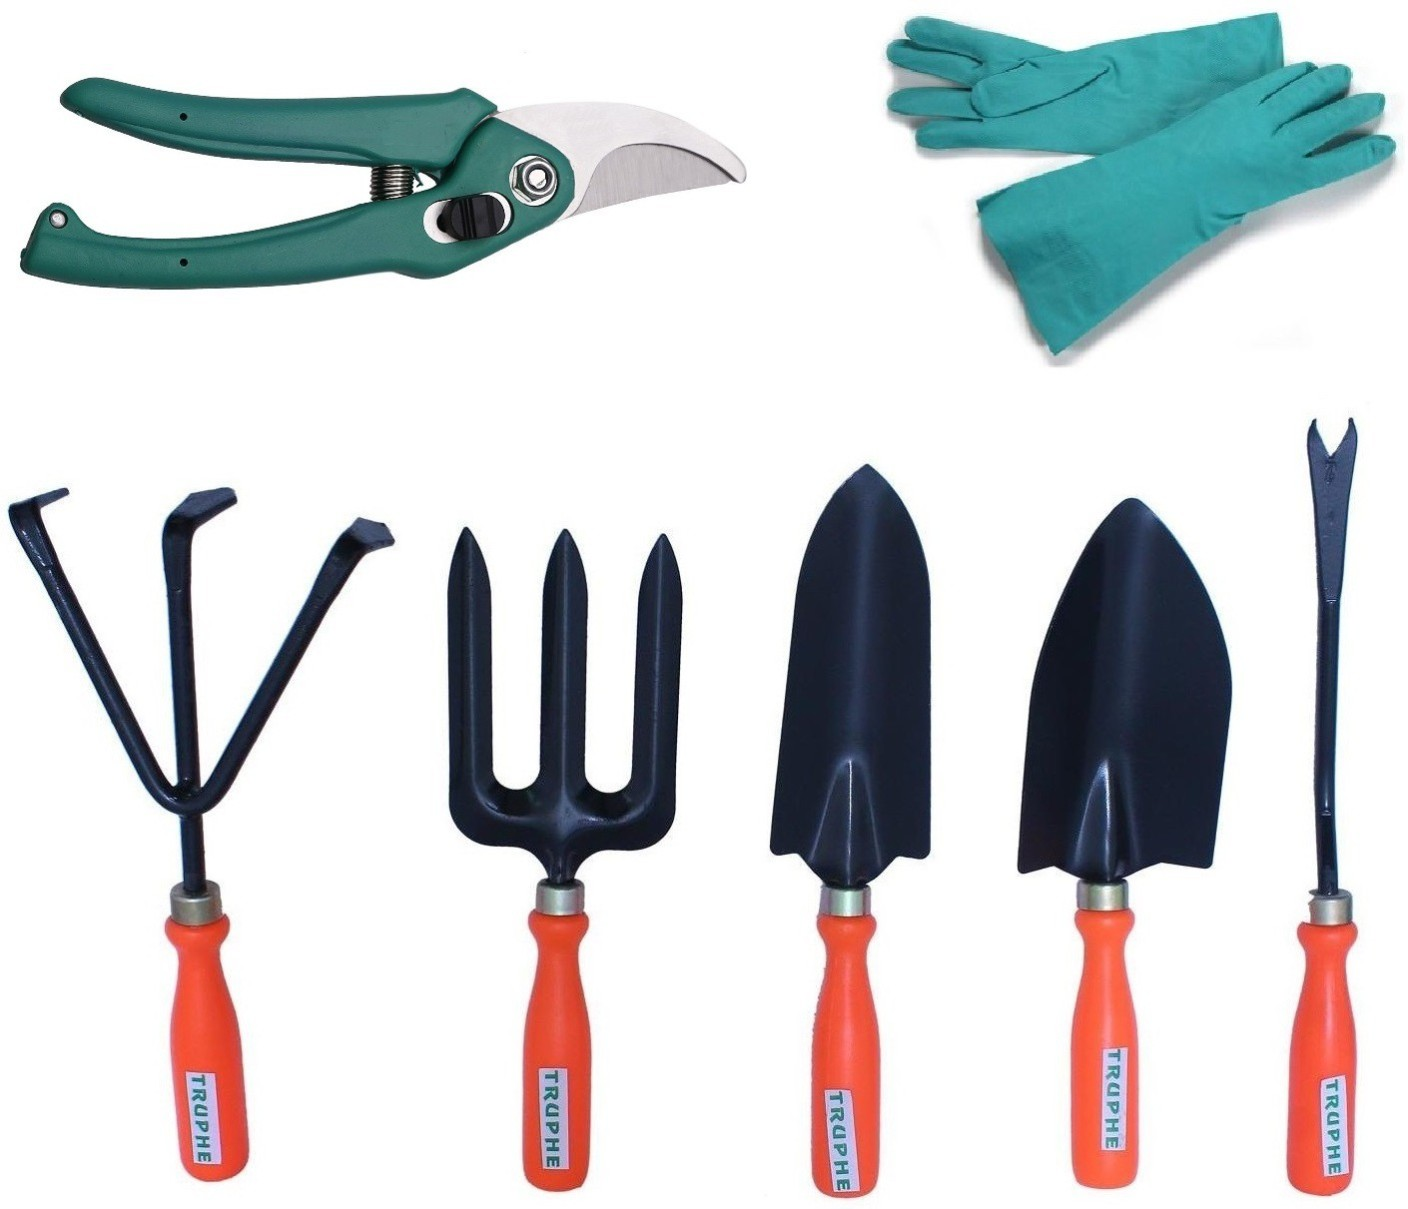 truphe gardening tool set garden tool kit price in india